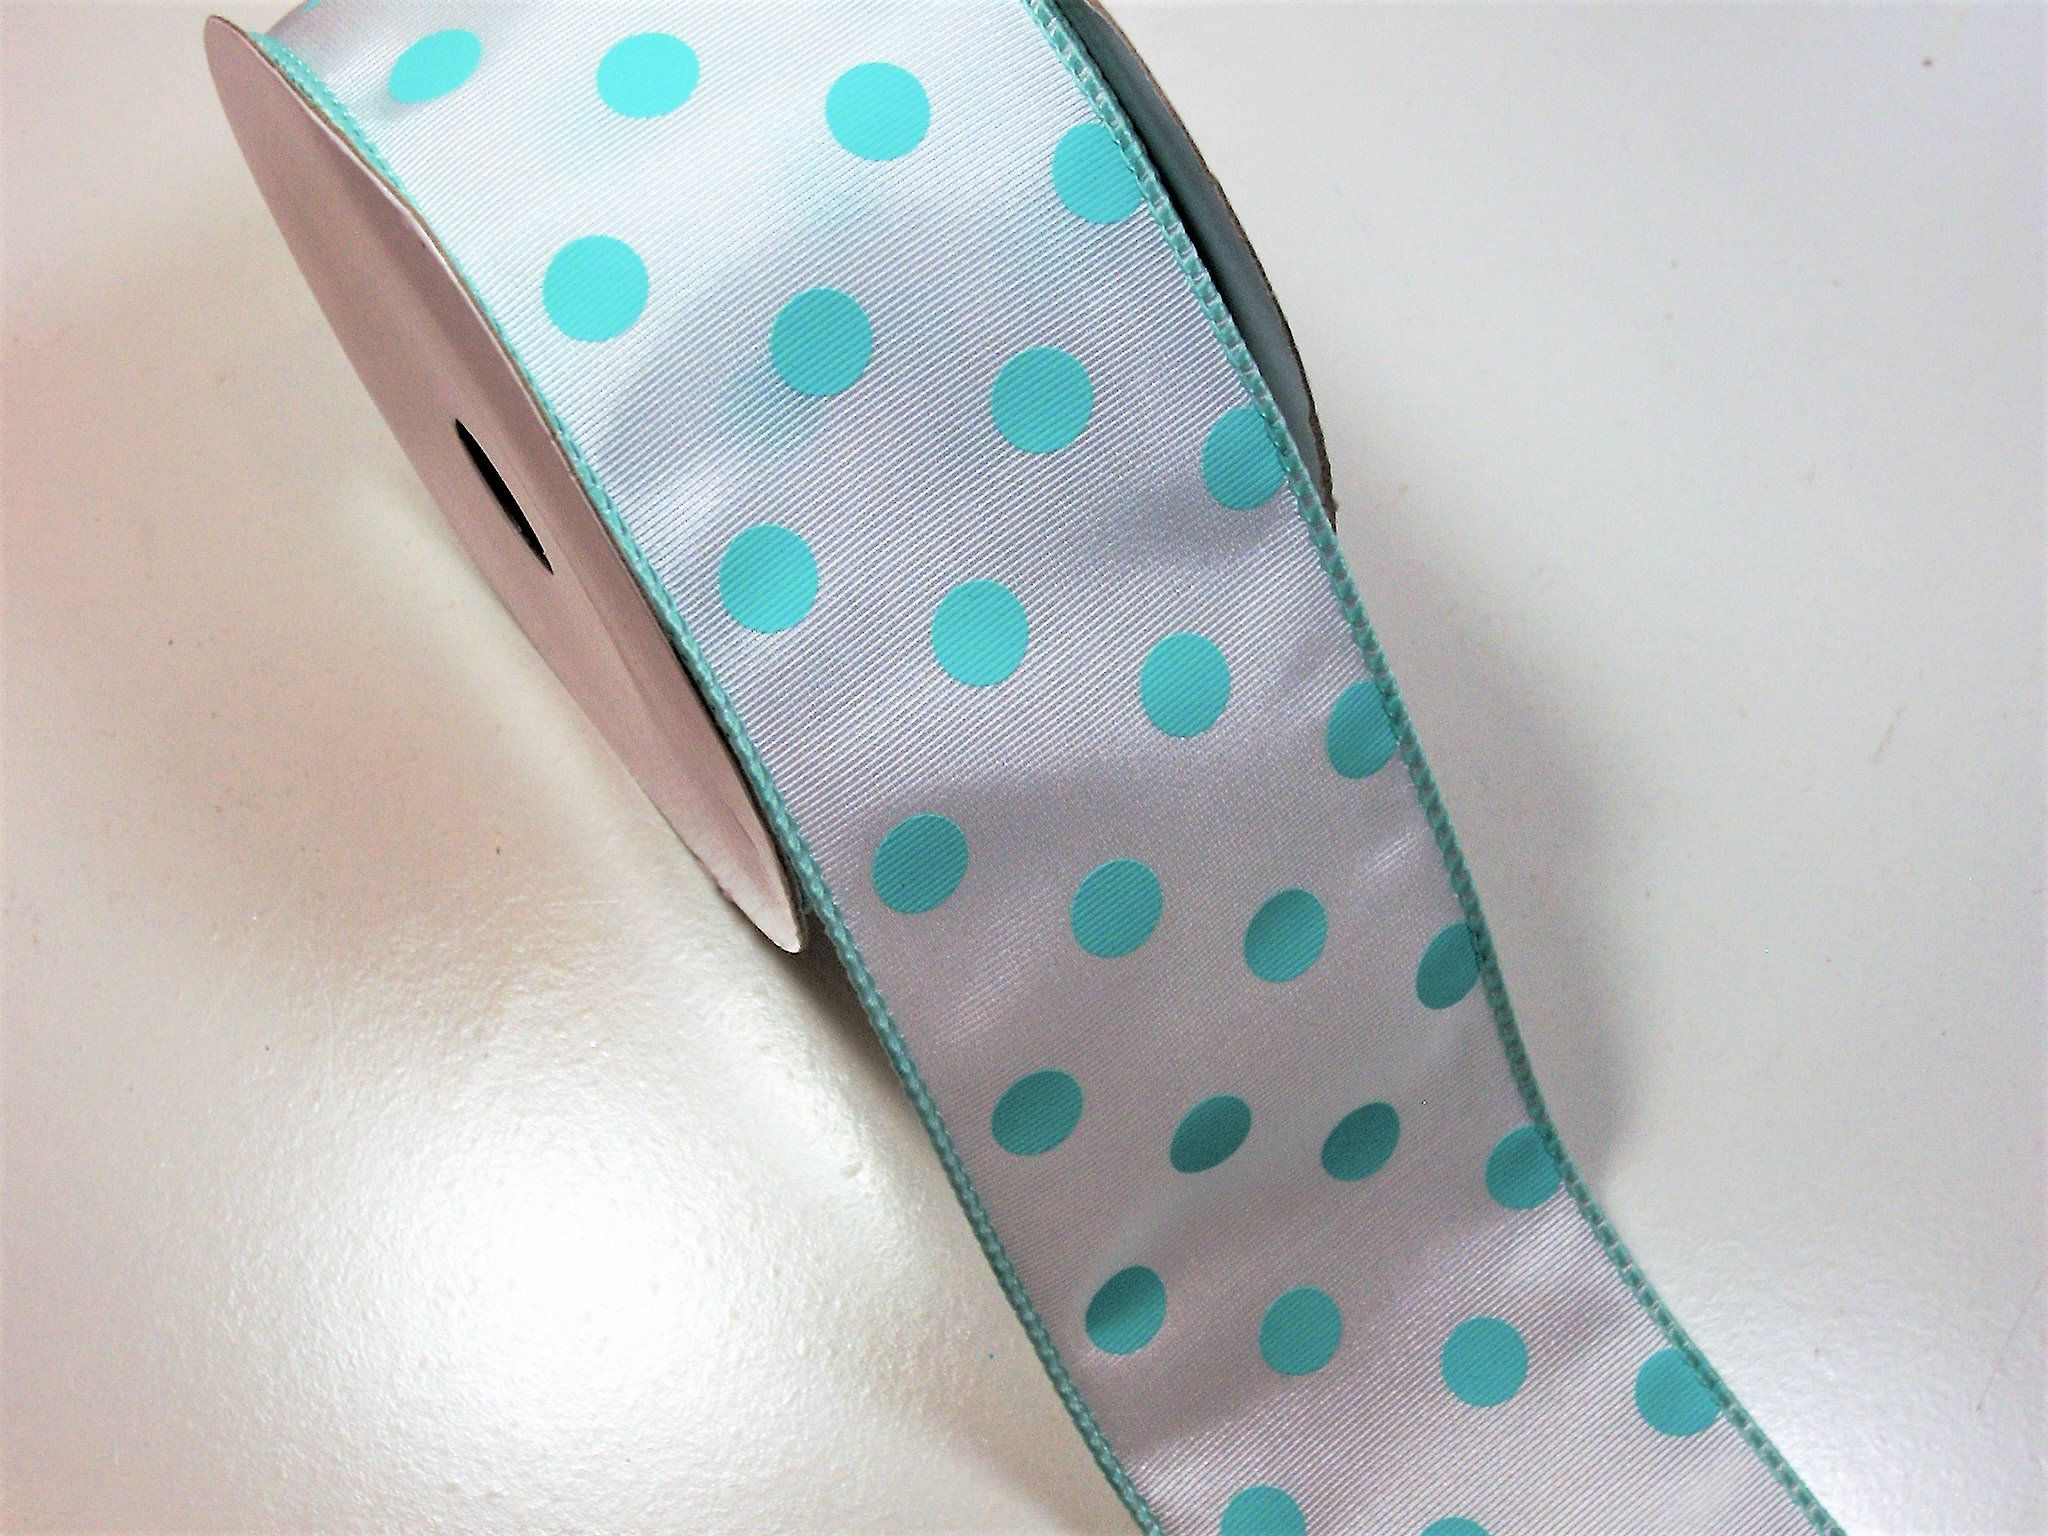 Schiff Blue and Pink Polka Dot Grosgrain Ribbon 1 1//2 inches wide x 10 yards